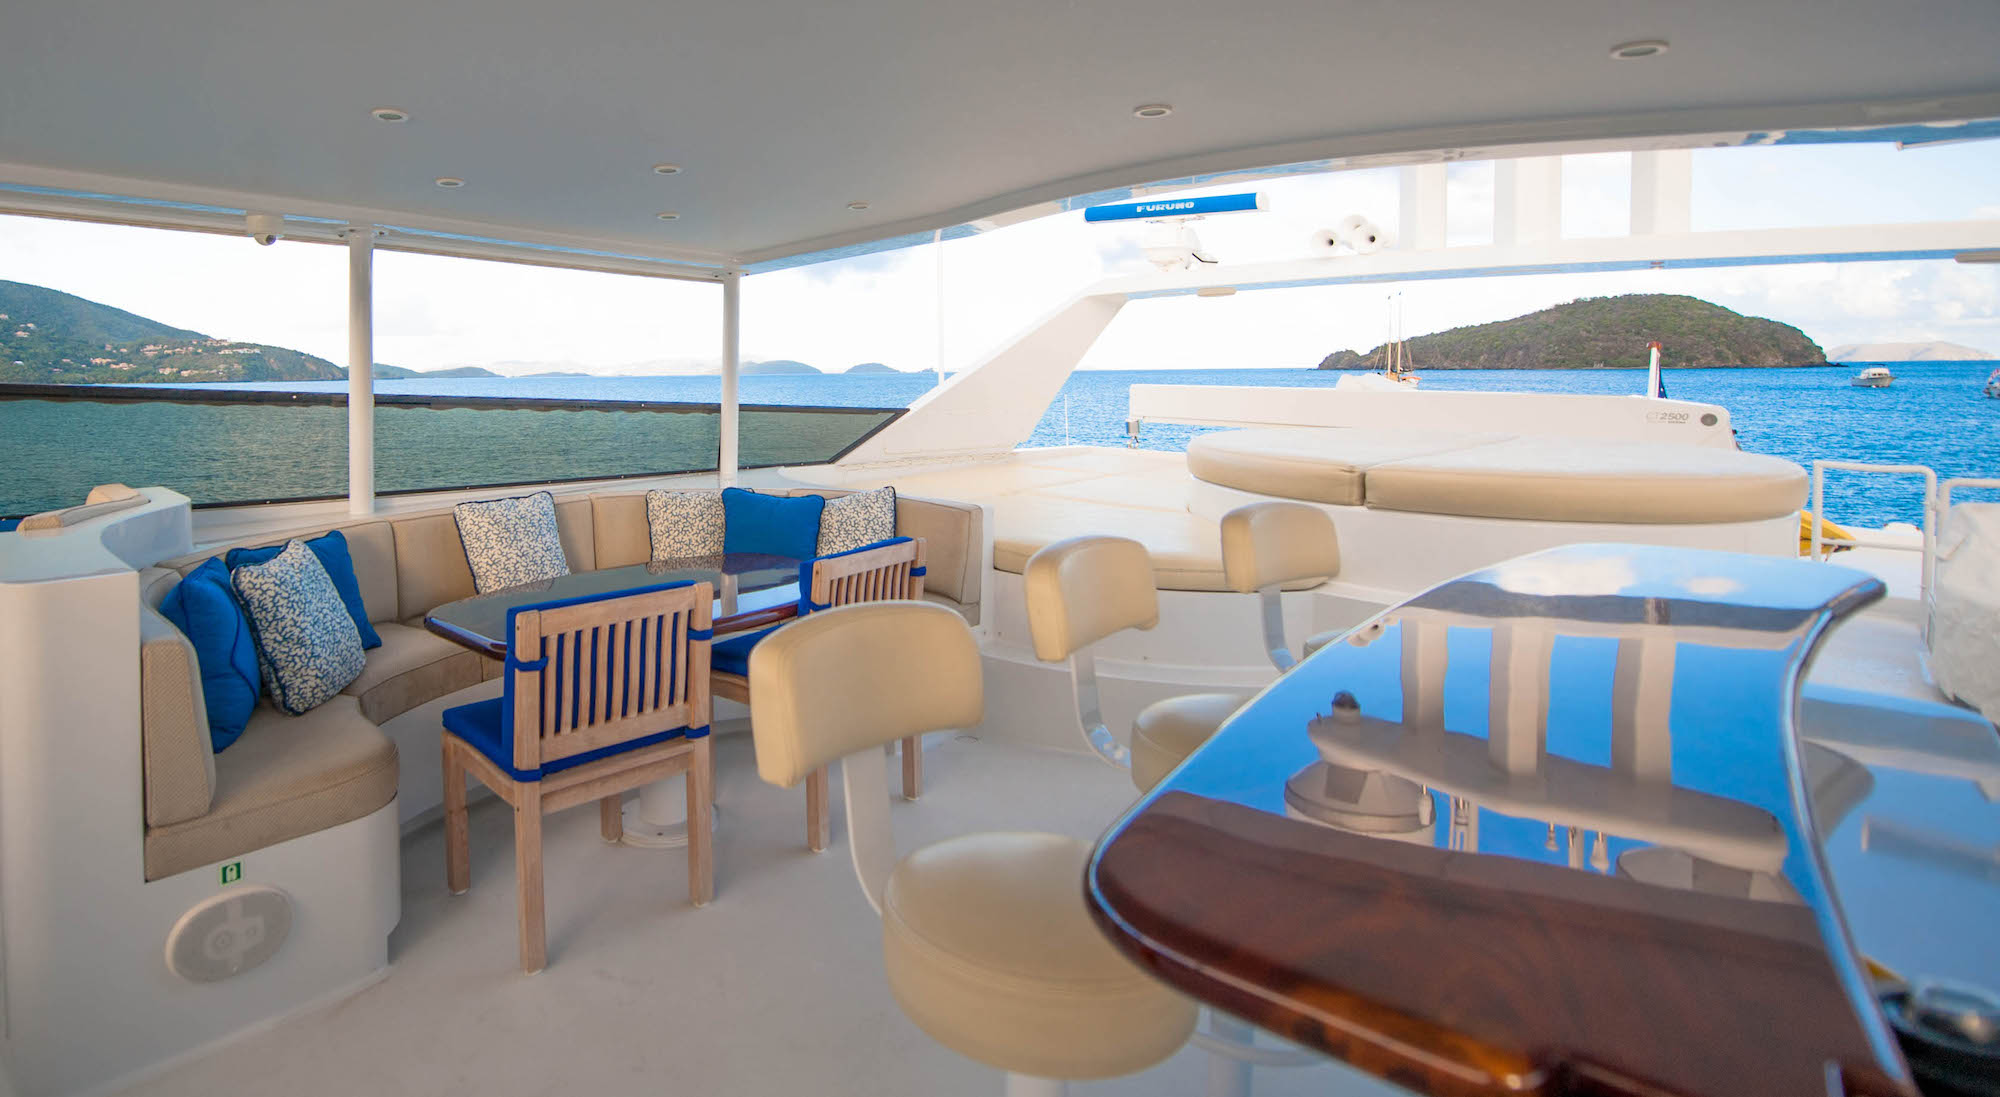 Lounge and bar area on yacht